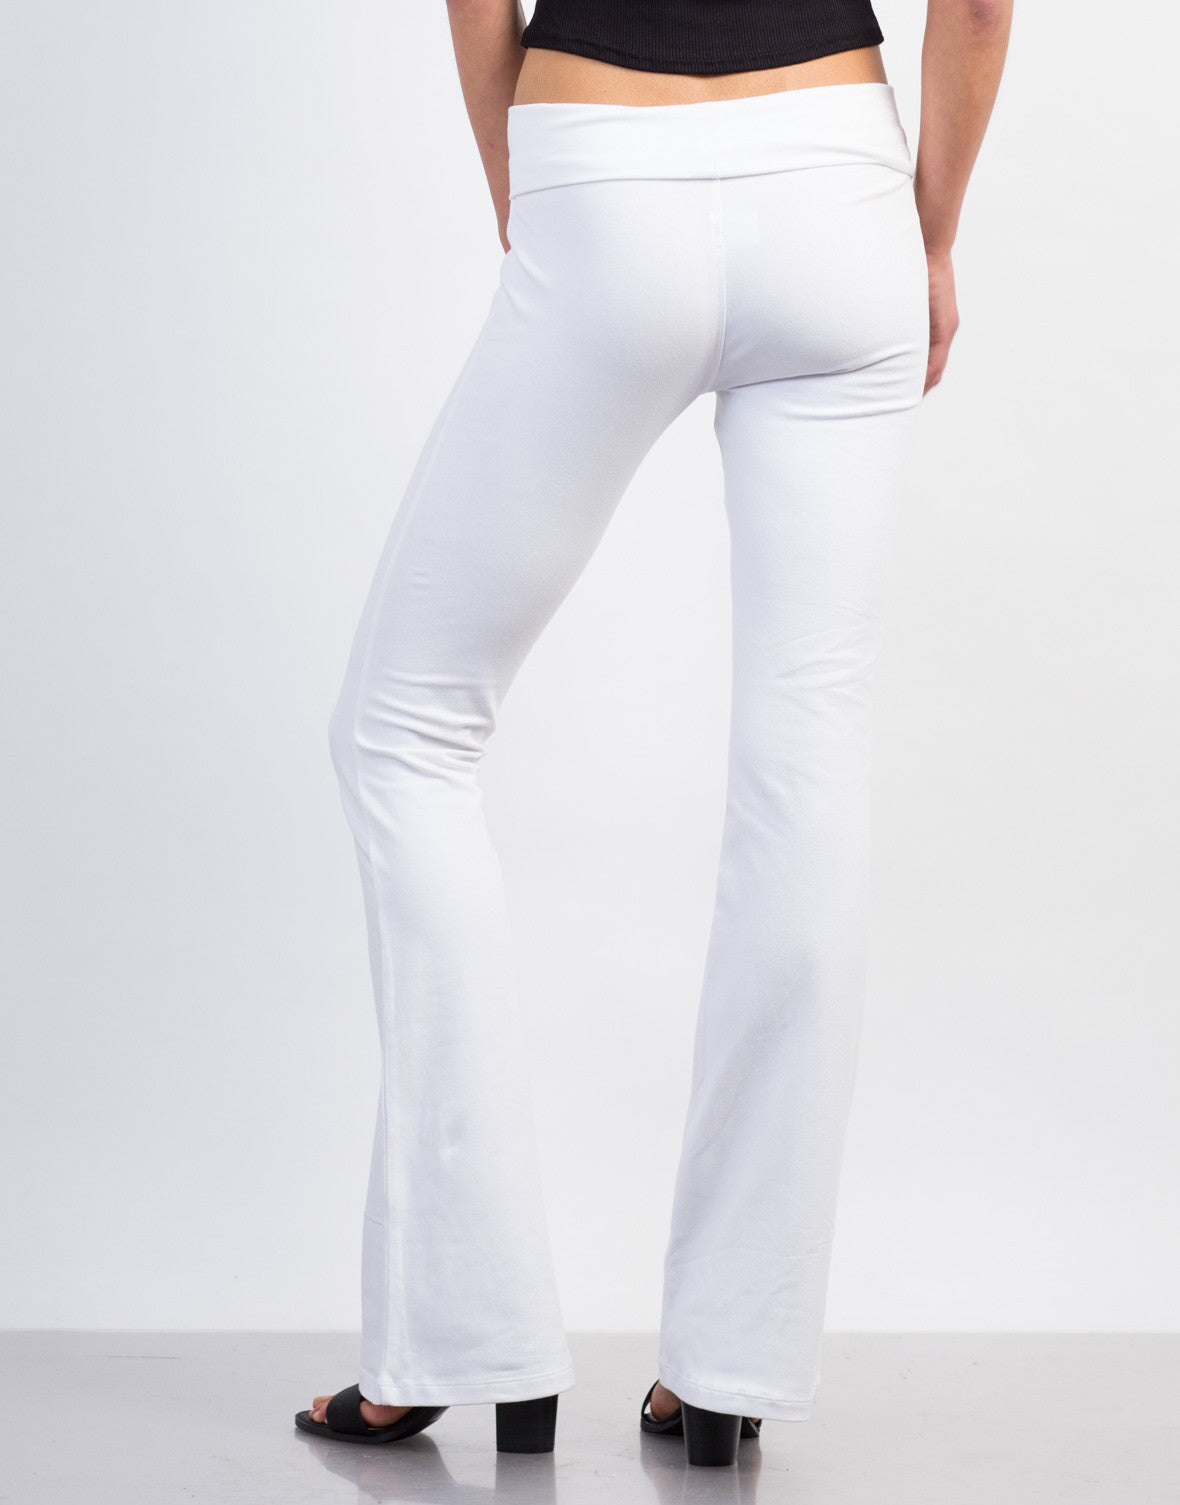 Back View of Simple Flared Pants